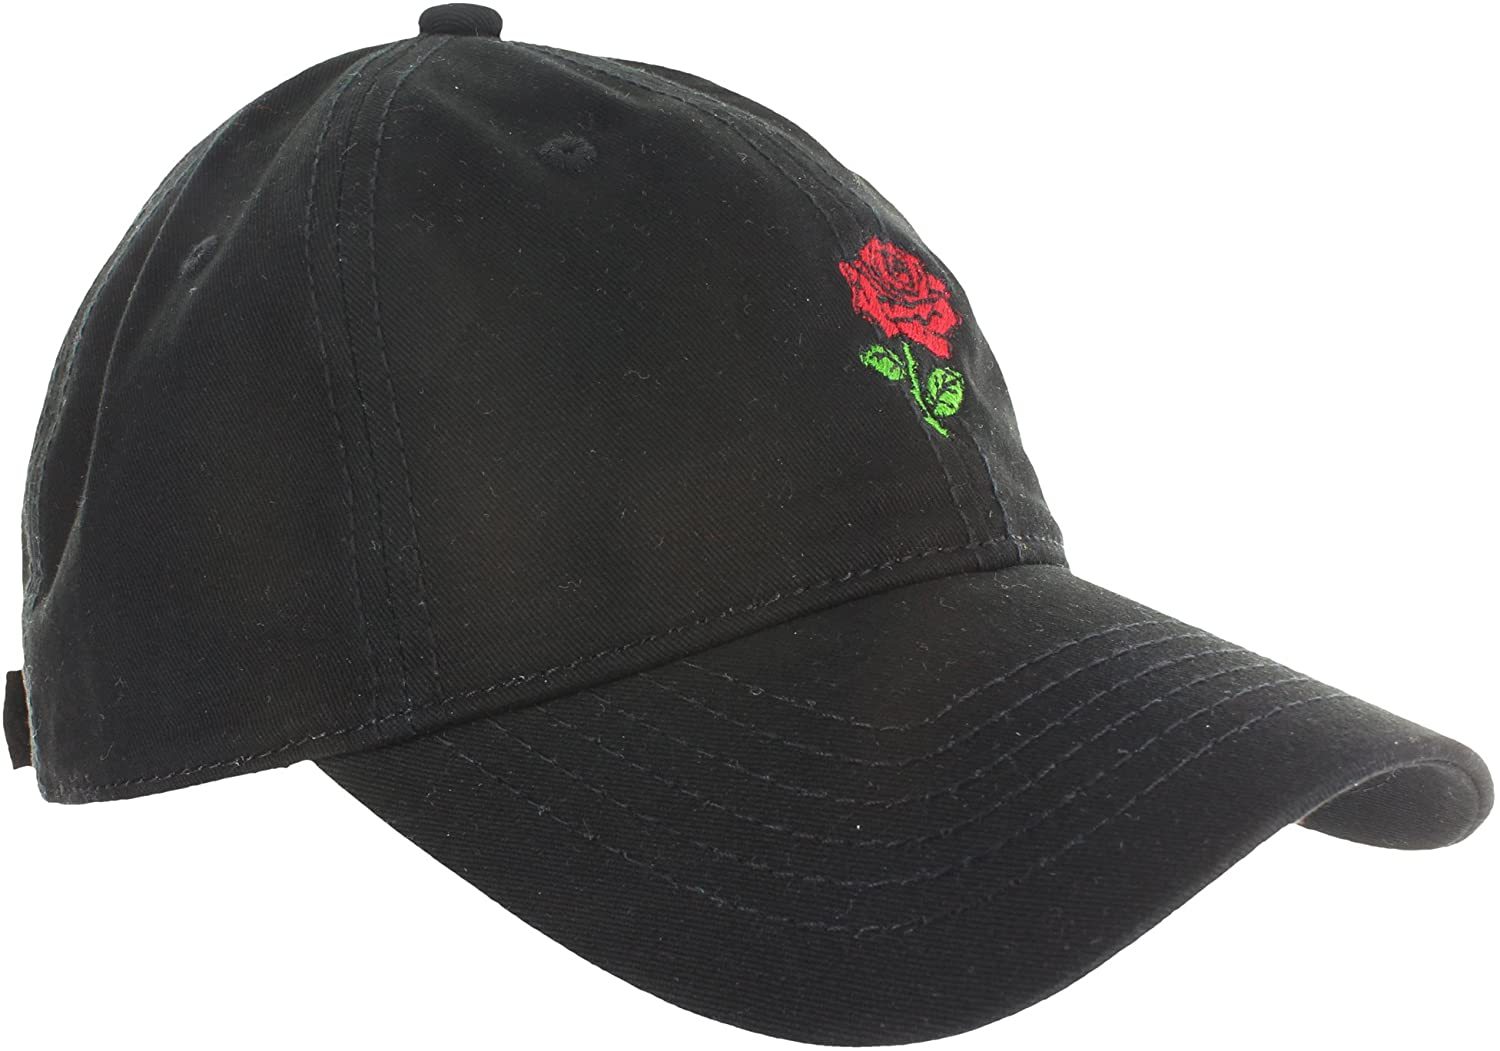 Amazon.com  Dad Hat Cap - Rose Flower Emoji Embroidered Adjustable Black  Baseball Cap  Clothing d91aefc39729